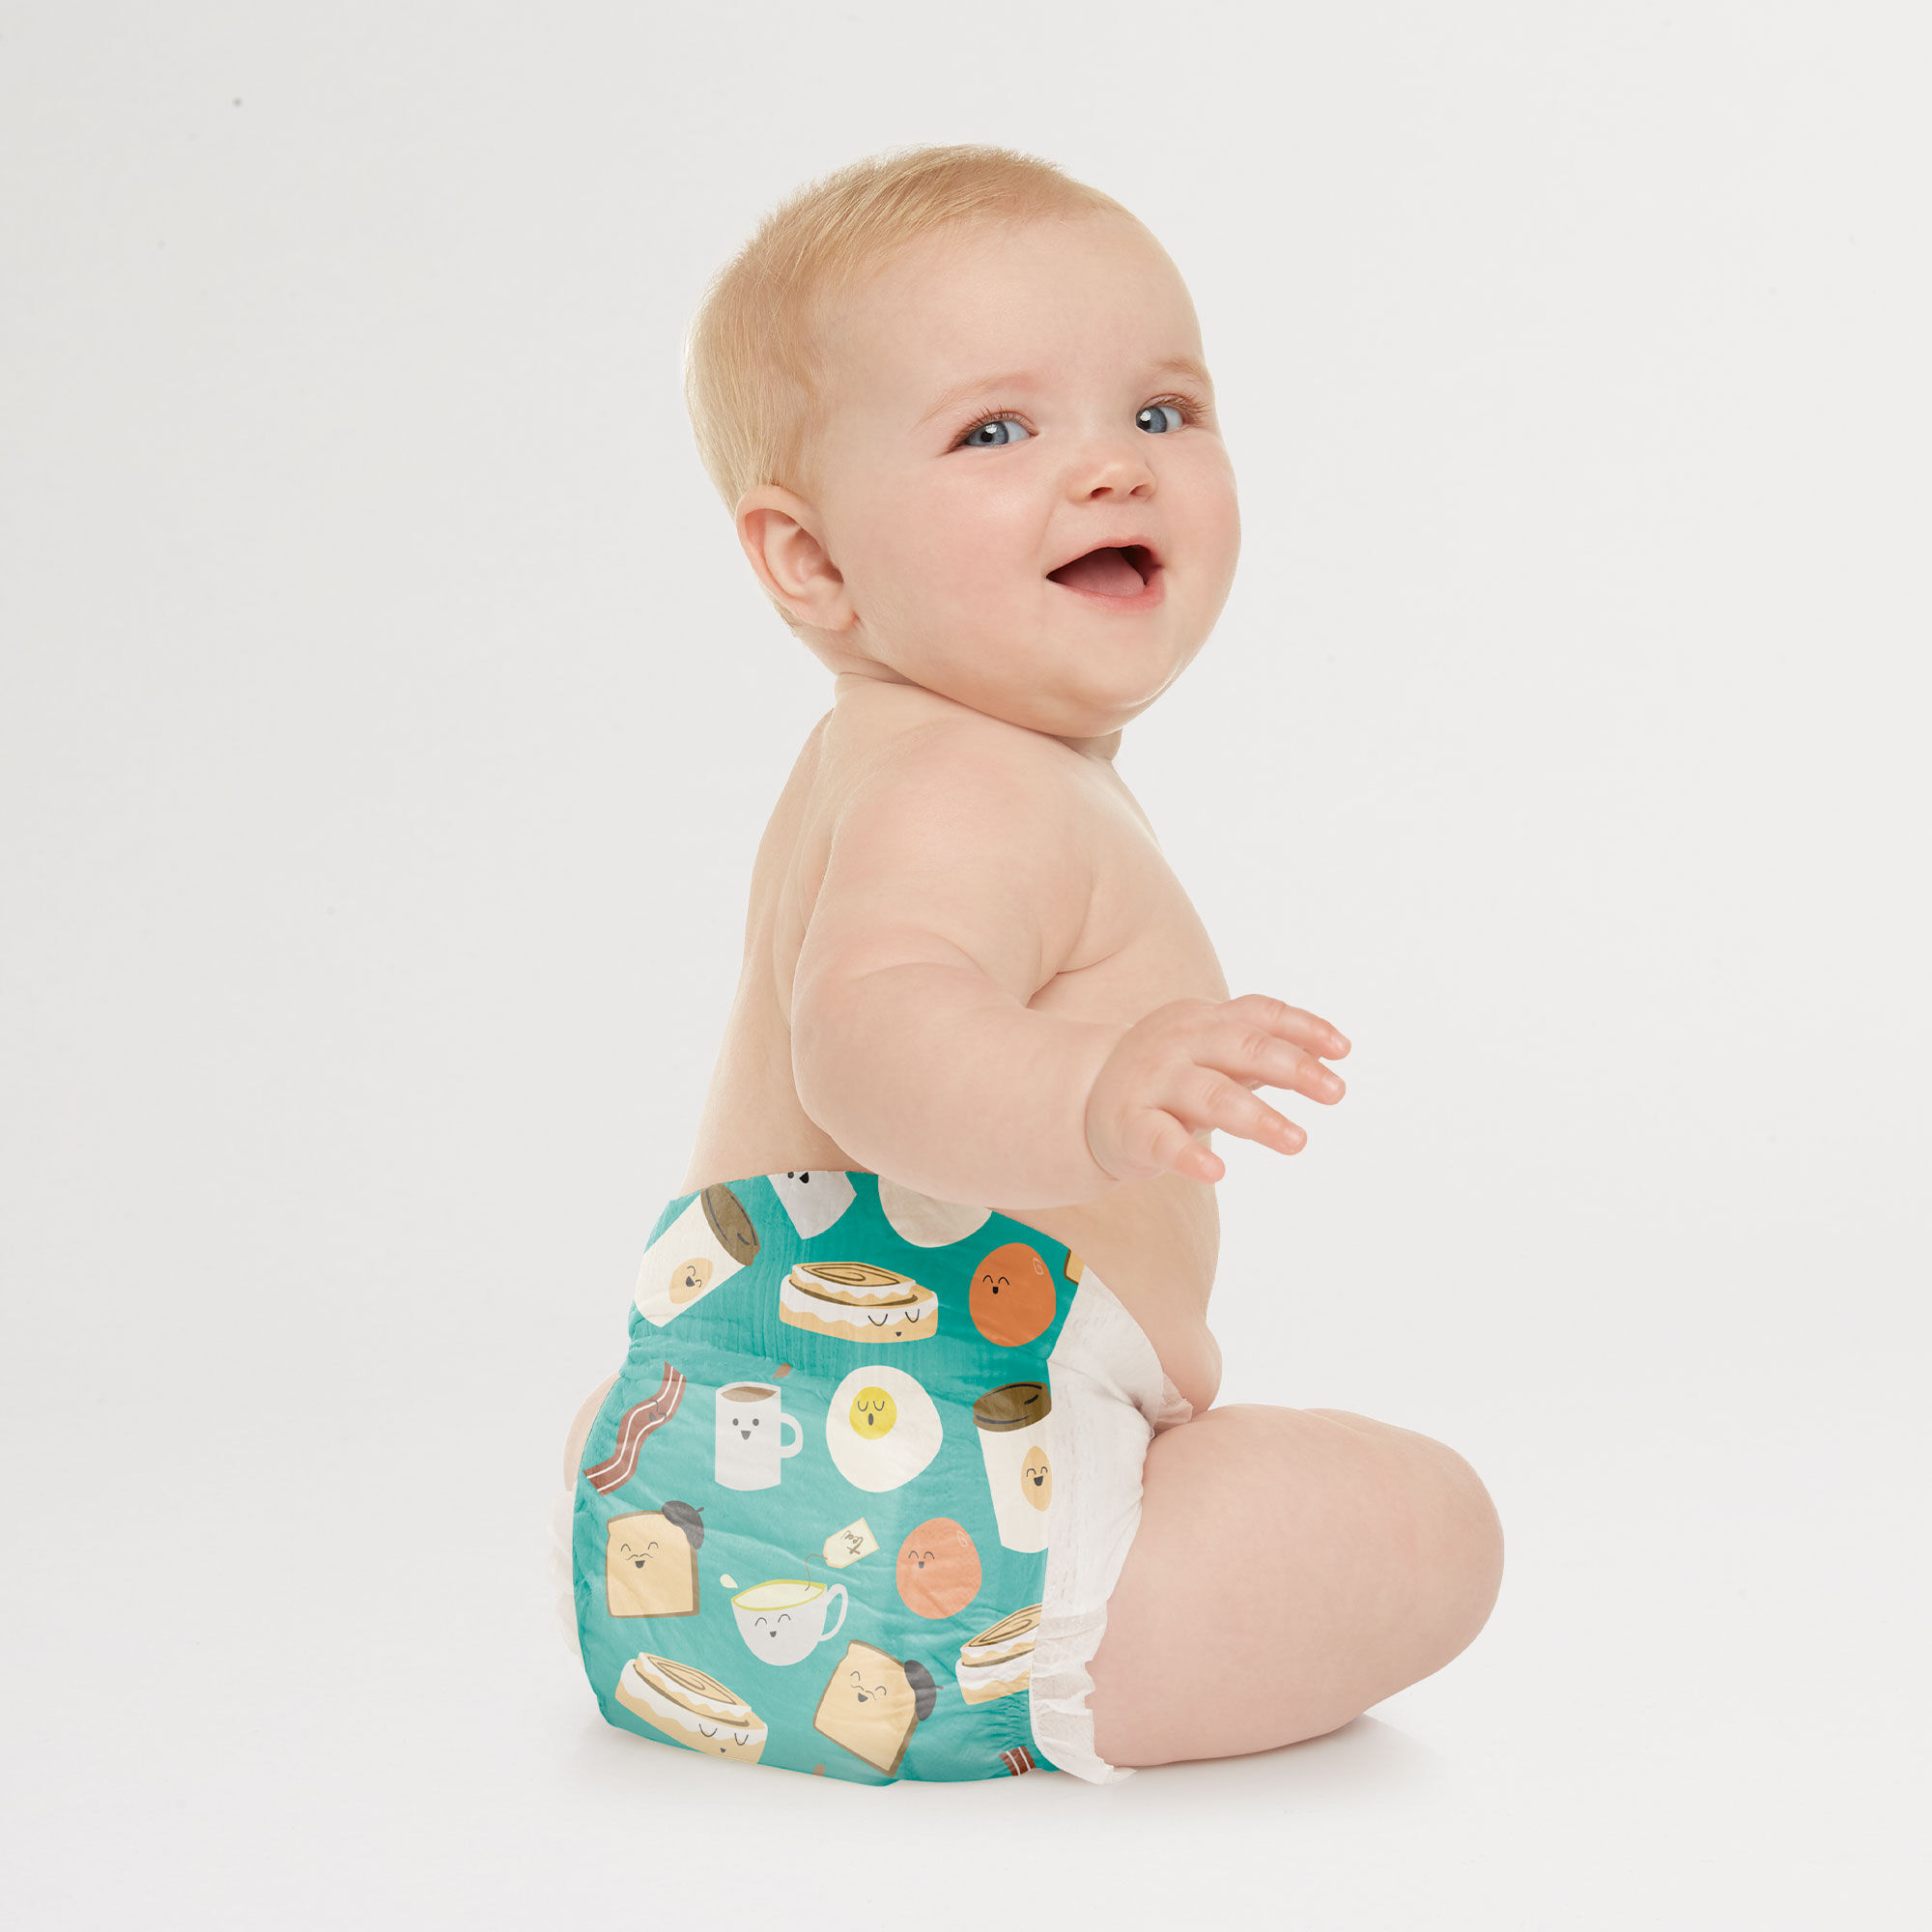 Honest Diaper on Baby in Breakfast Pattern